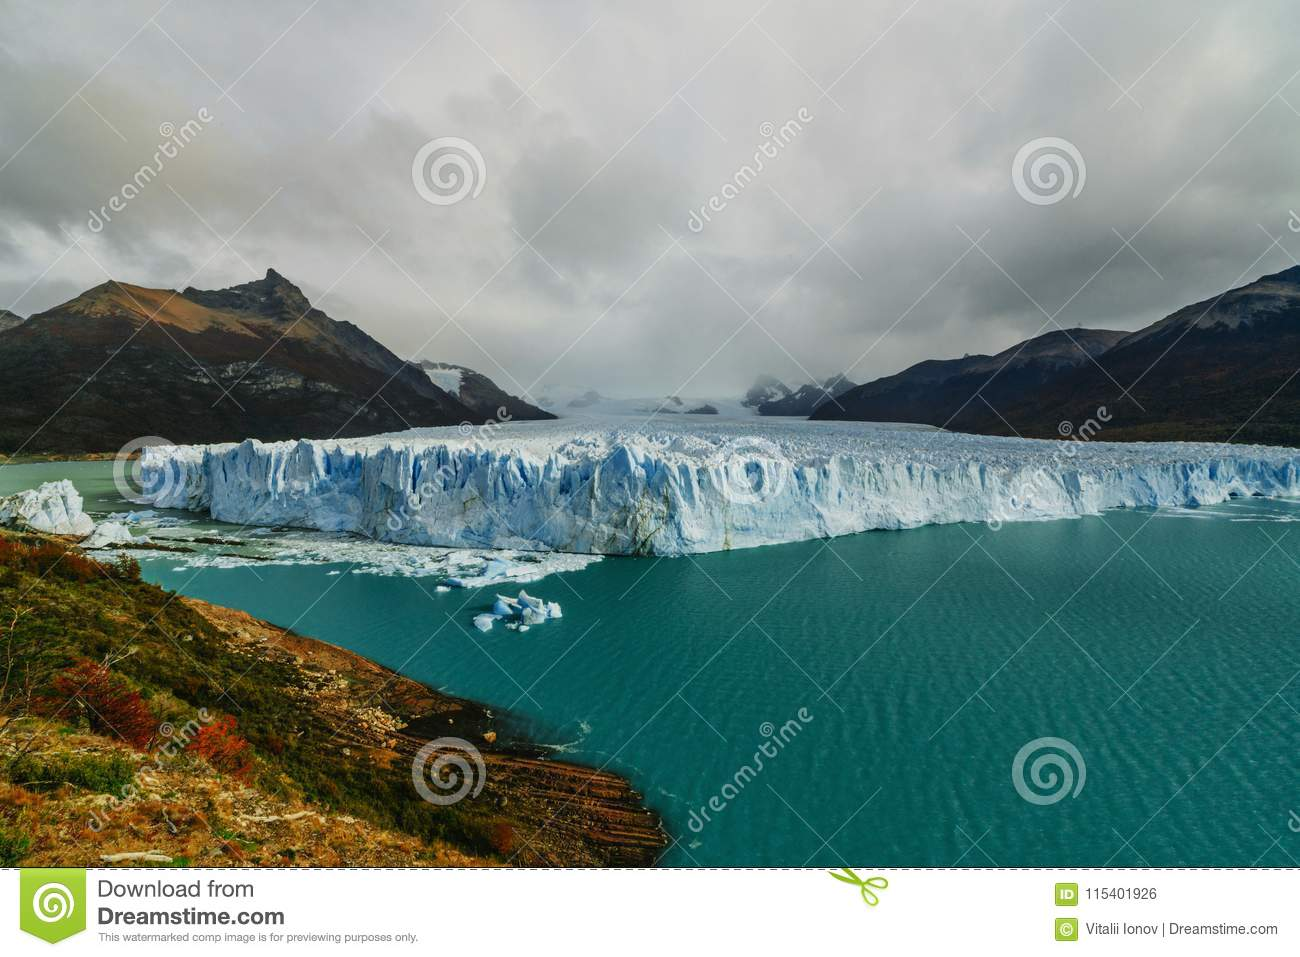 Glacier Perito Moreno in the park Los Glaciares. Autumn in Patagonia, the Argentine side